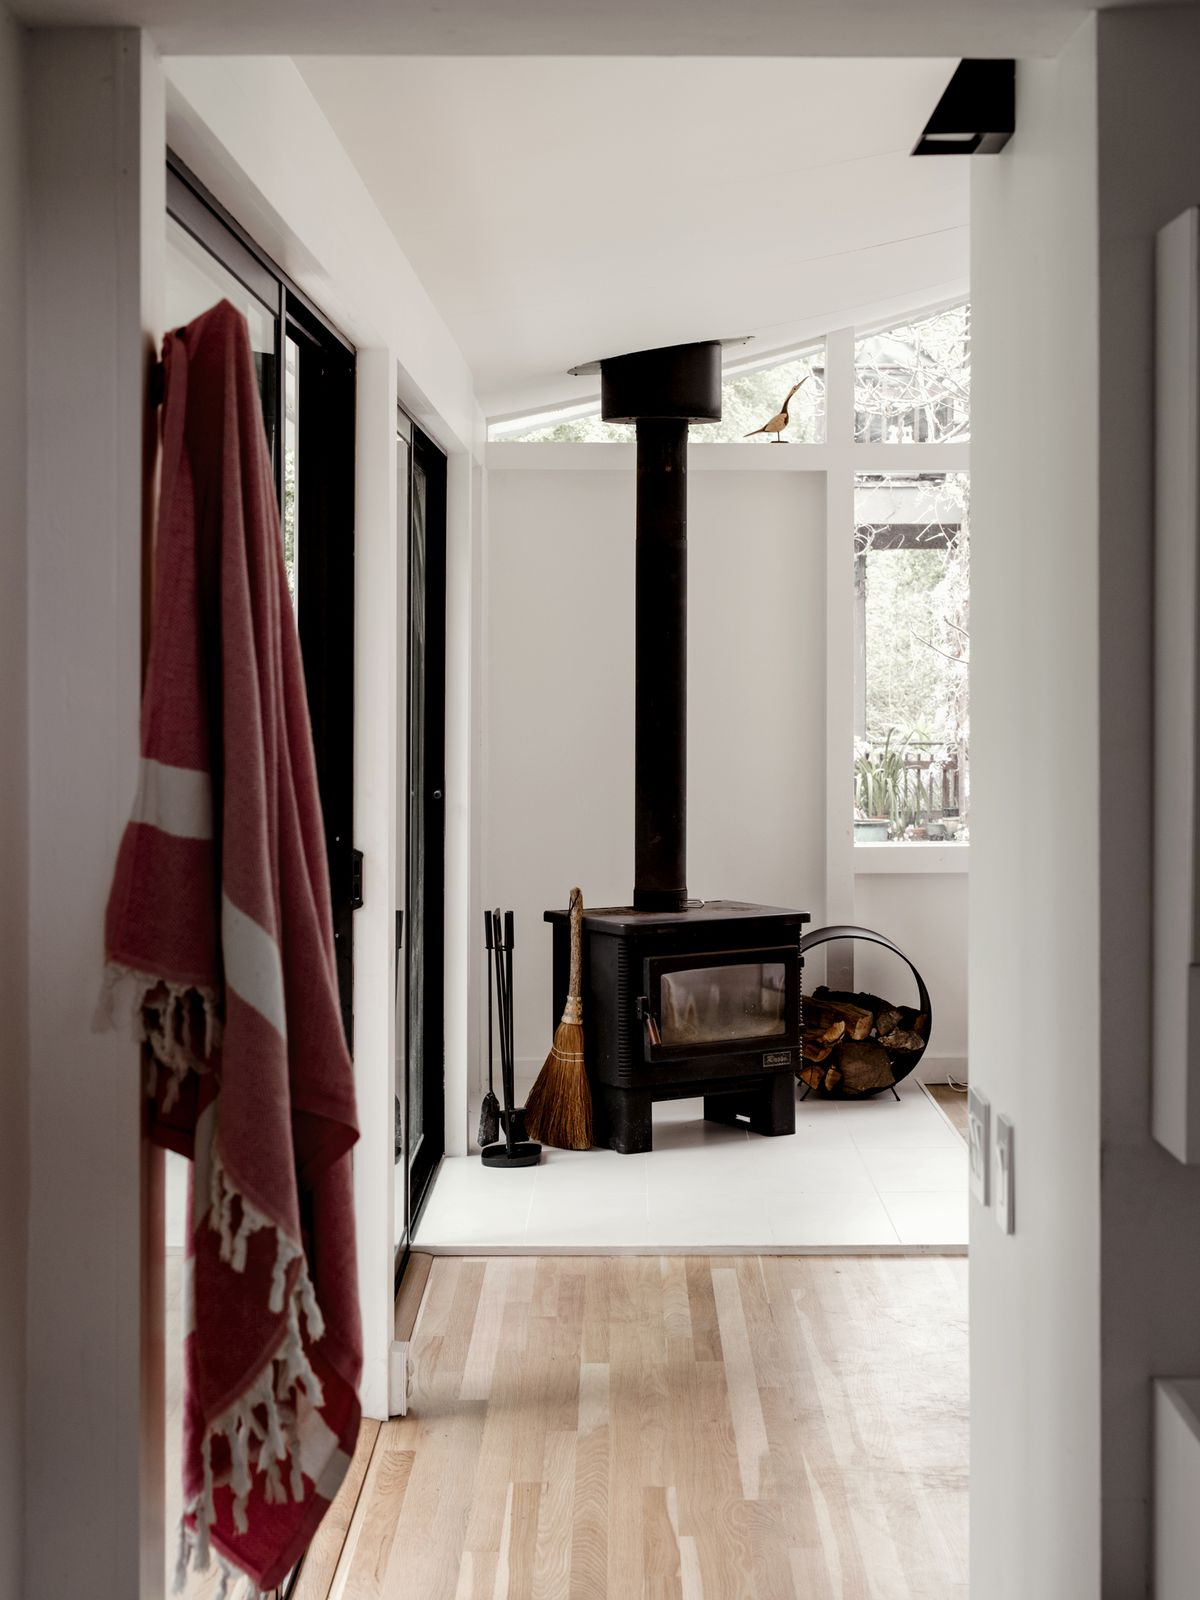 The corner of a living room. There is a black fireplace. The floor is hardwood and the walls are painted white.